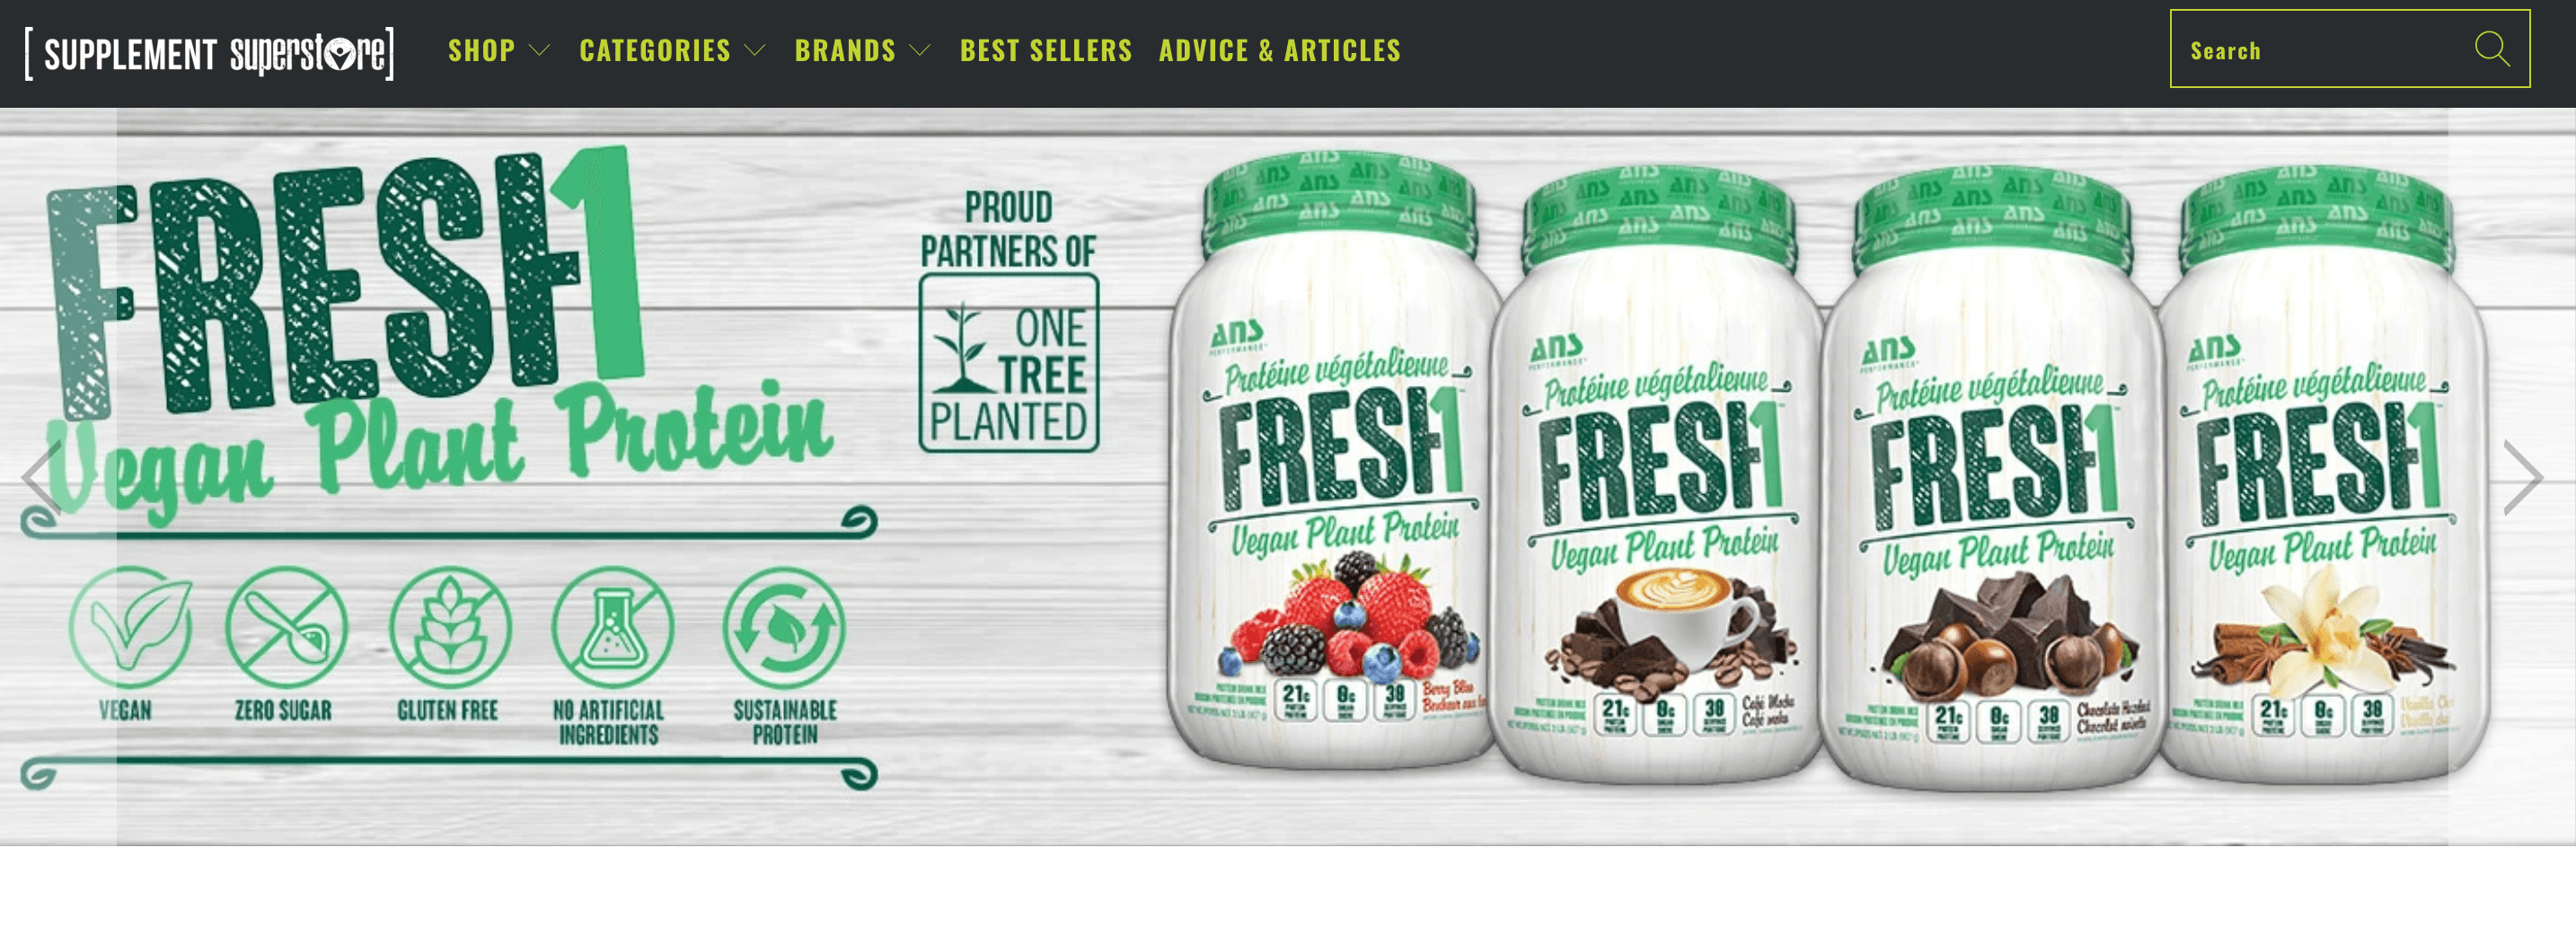 Supplement Superstore homepage 2020